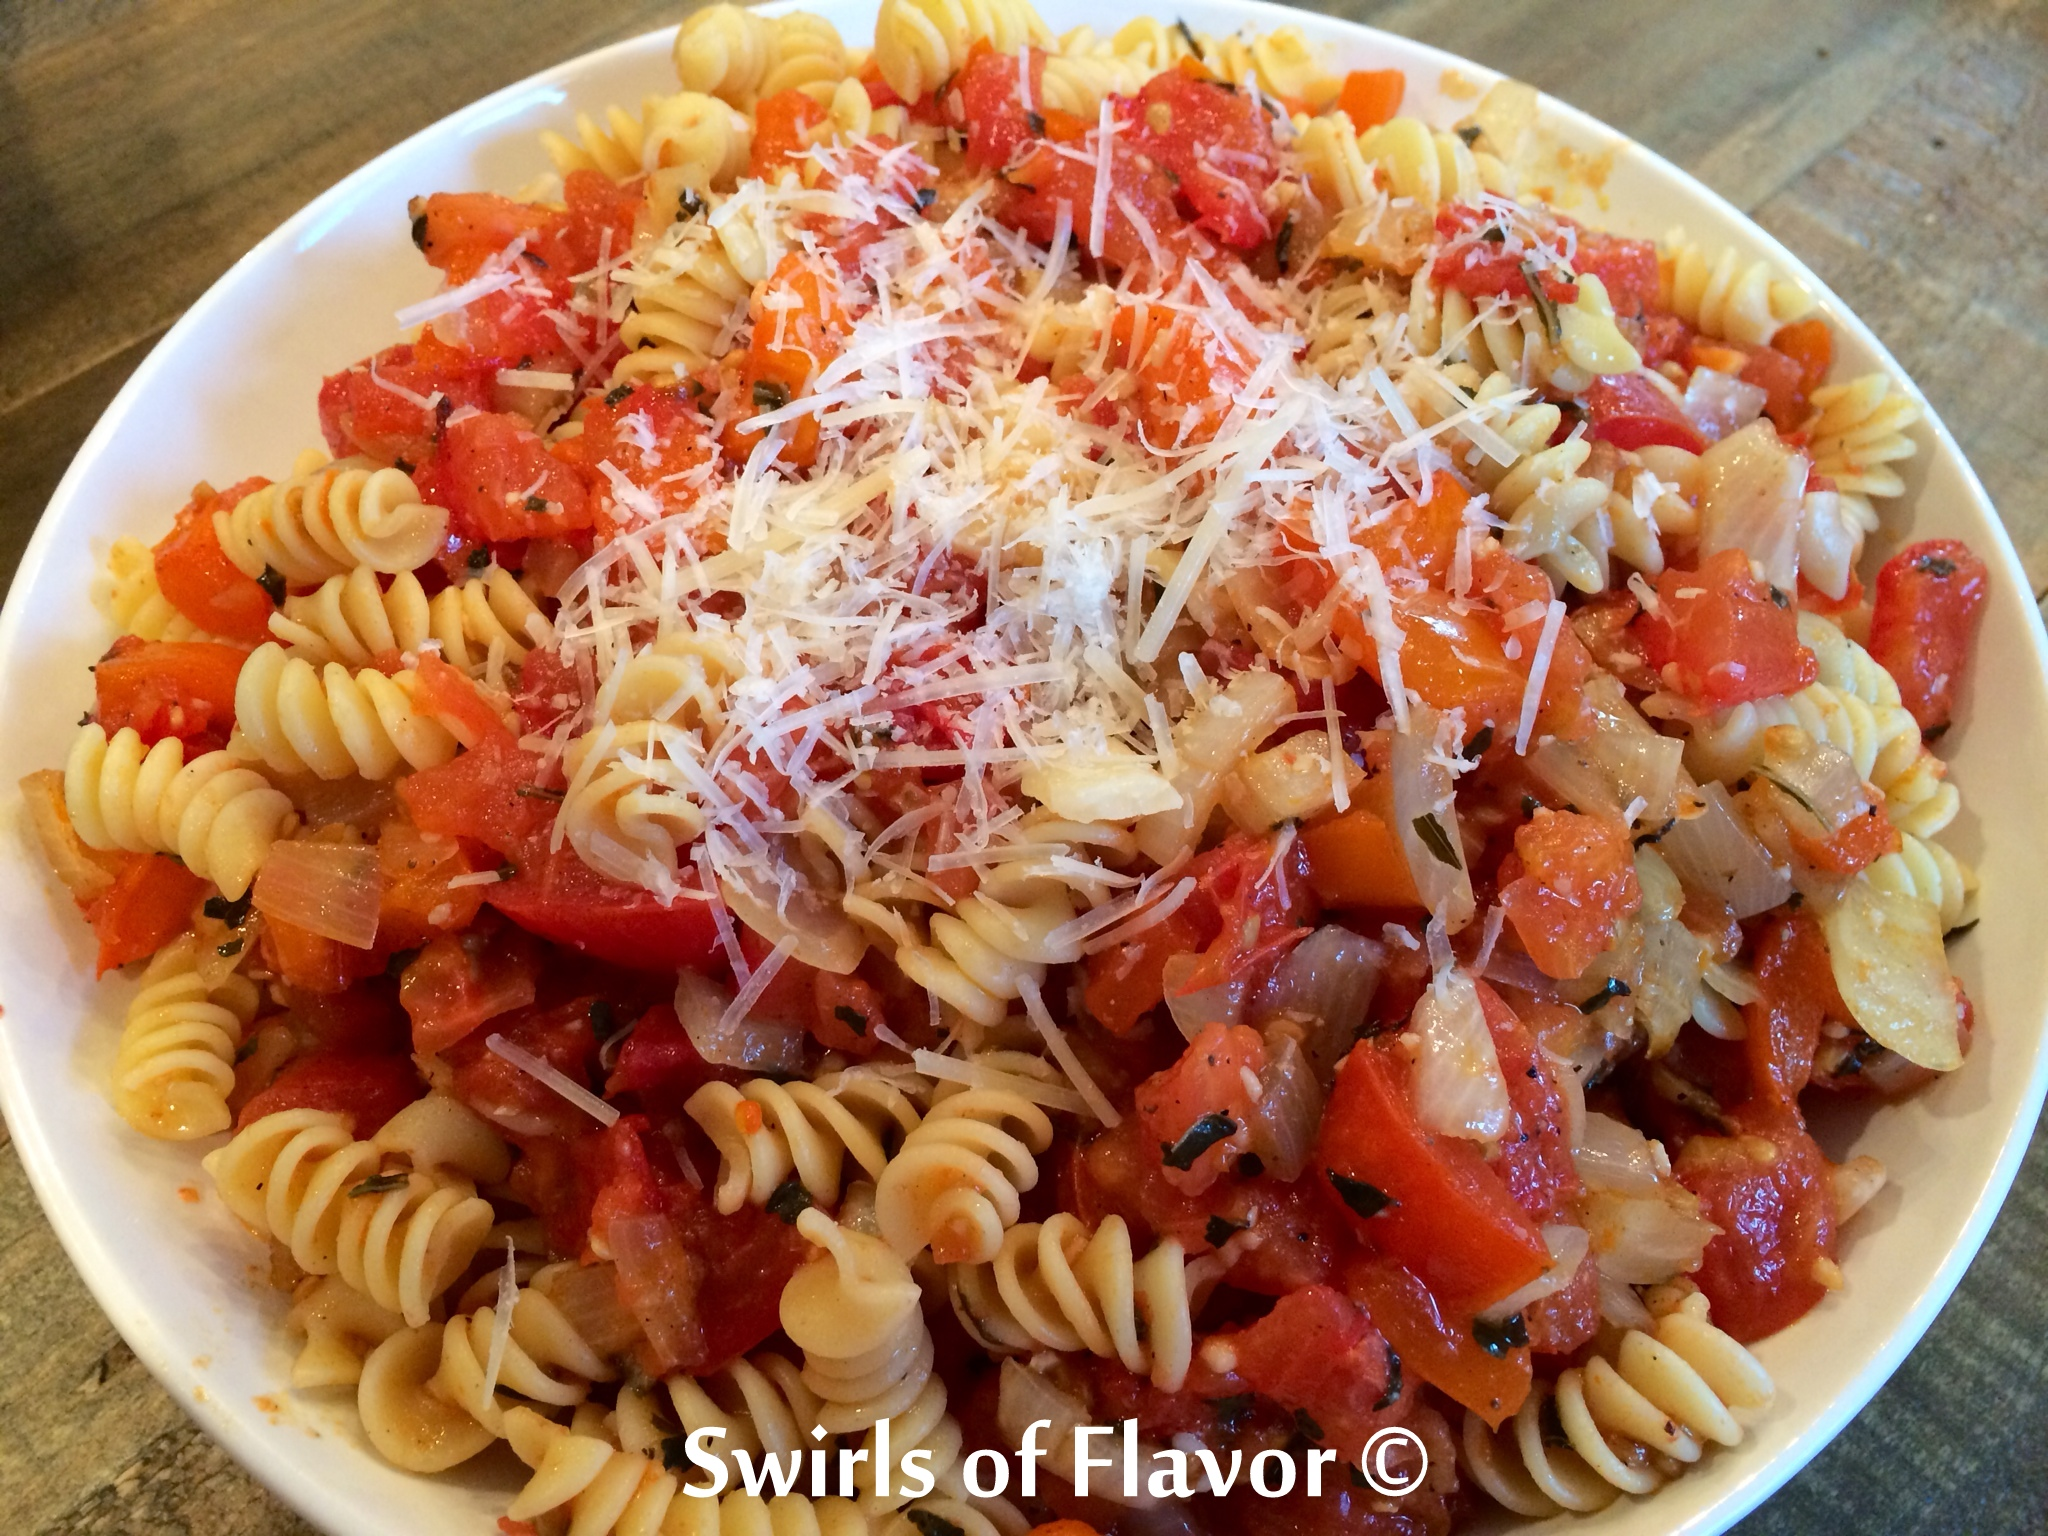 boof pasta with a roasted tomato sauce and cheese